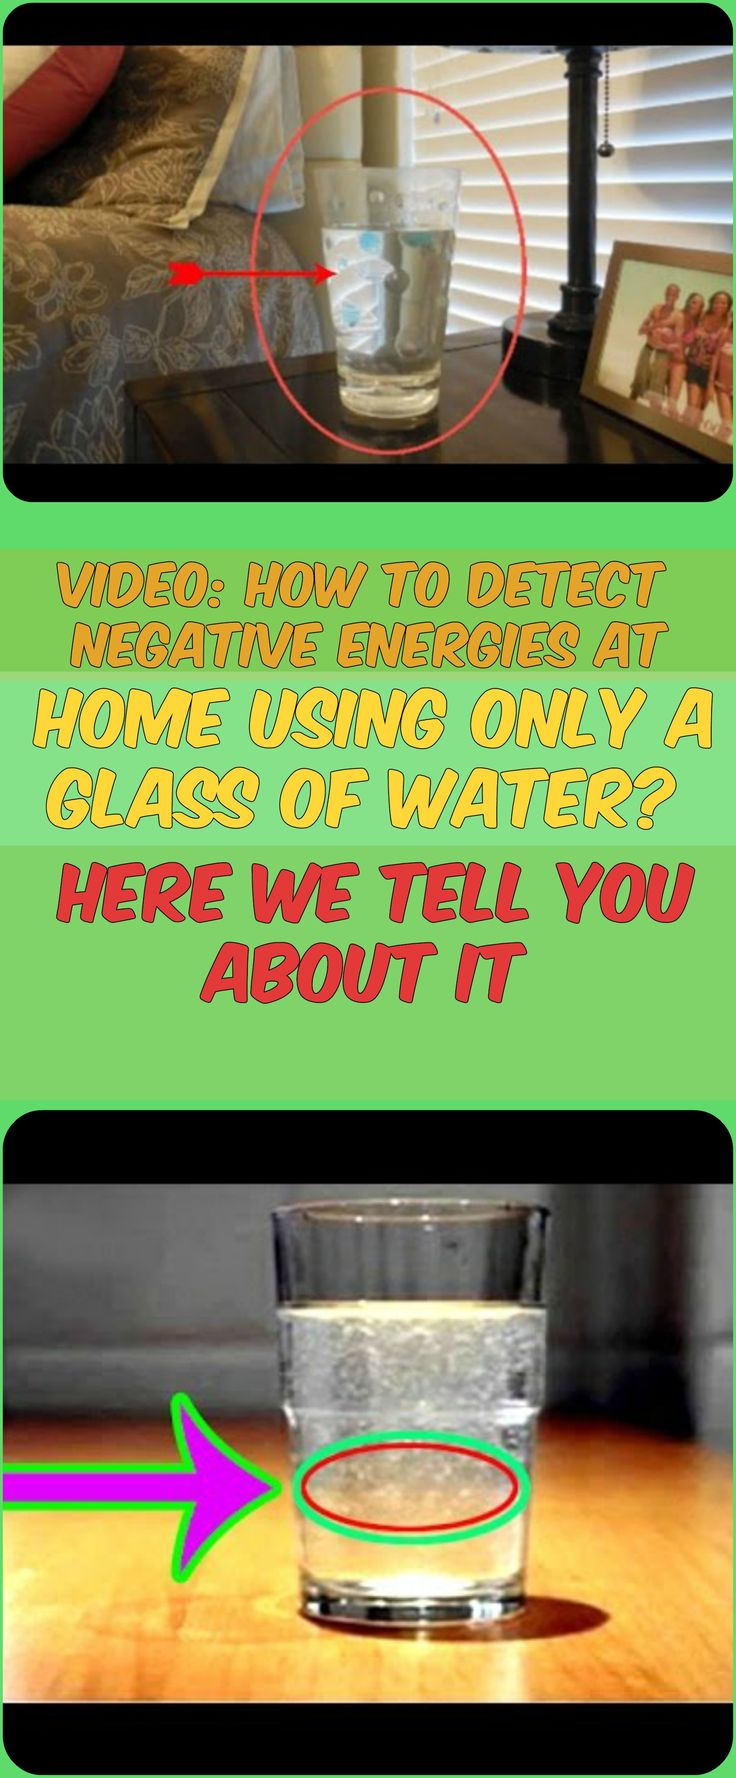 VIDEO: HOW TO DETECT NEGATIVE ENERGIES AT HOME USING ONLY A GLASS OF WATER? HERE WE TELL YOU ABOUT IT